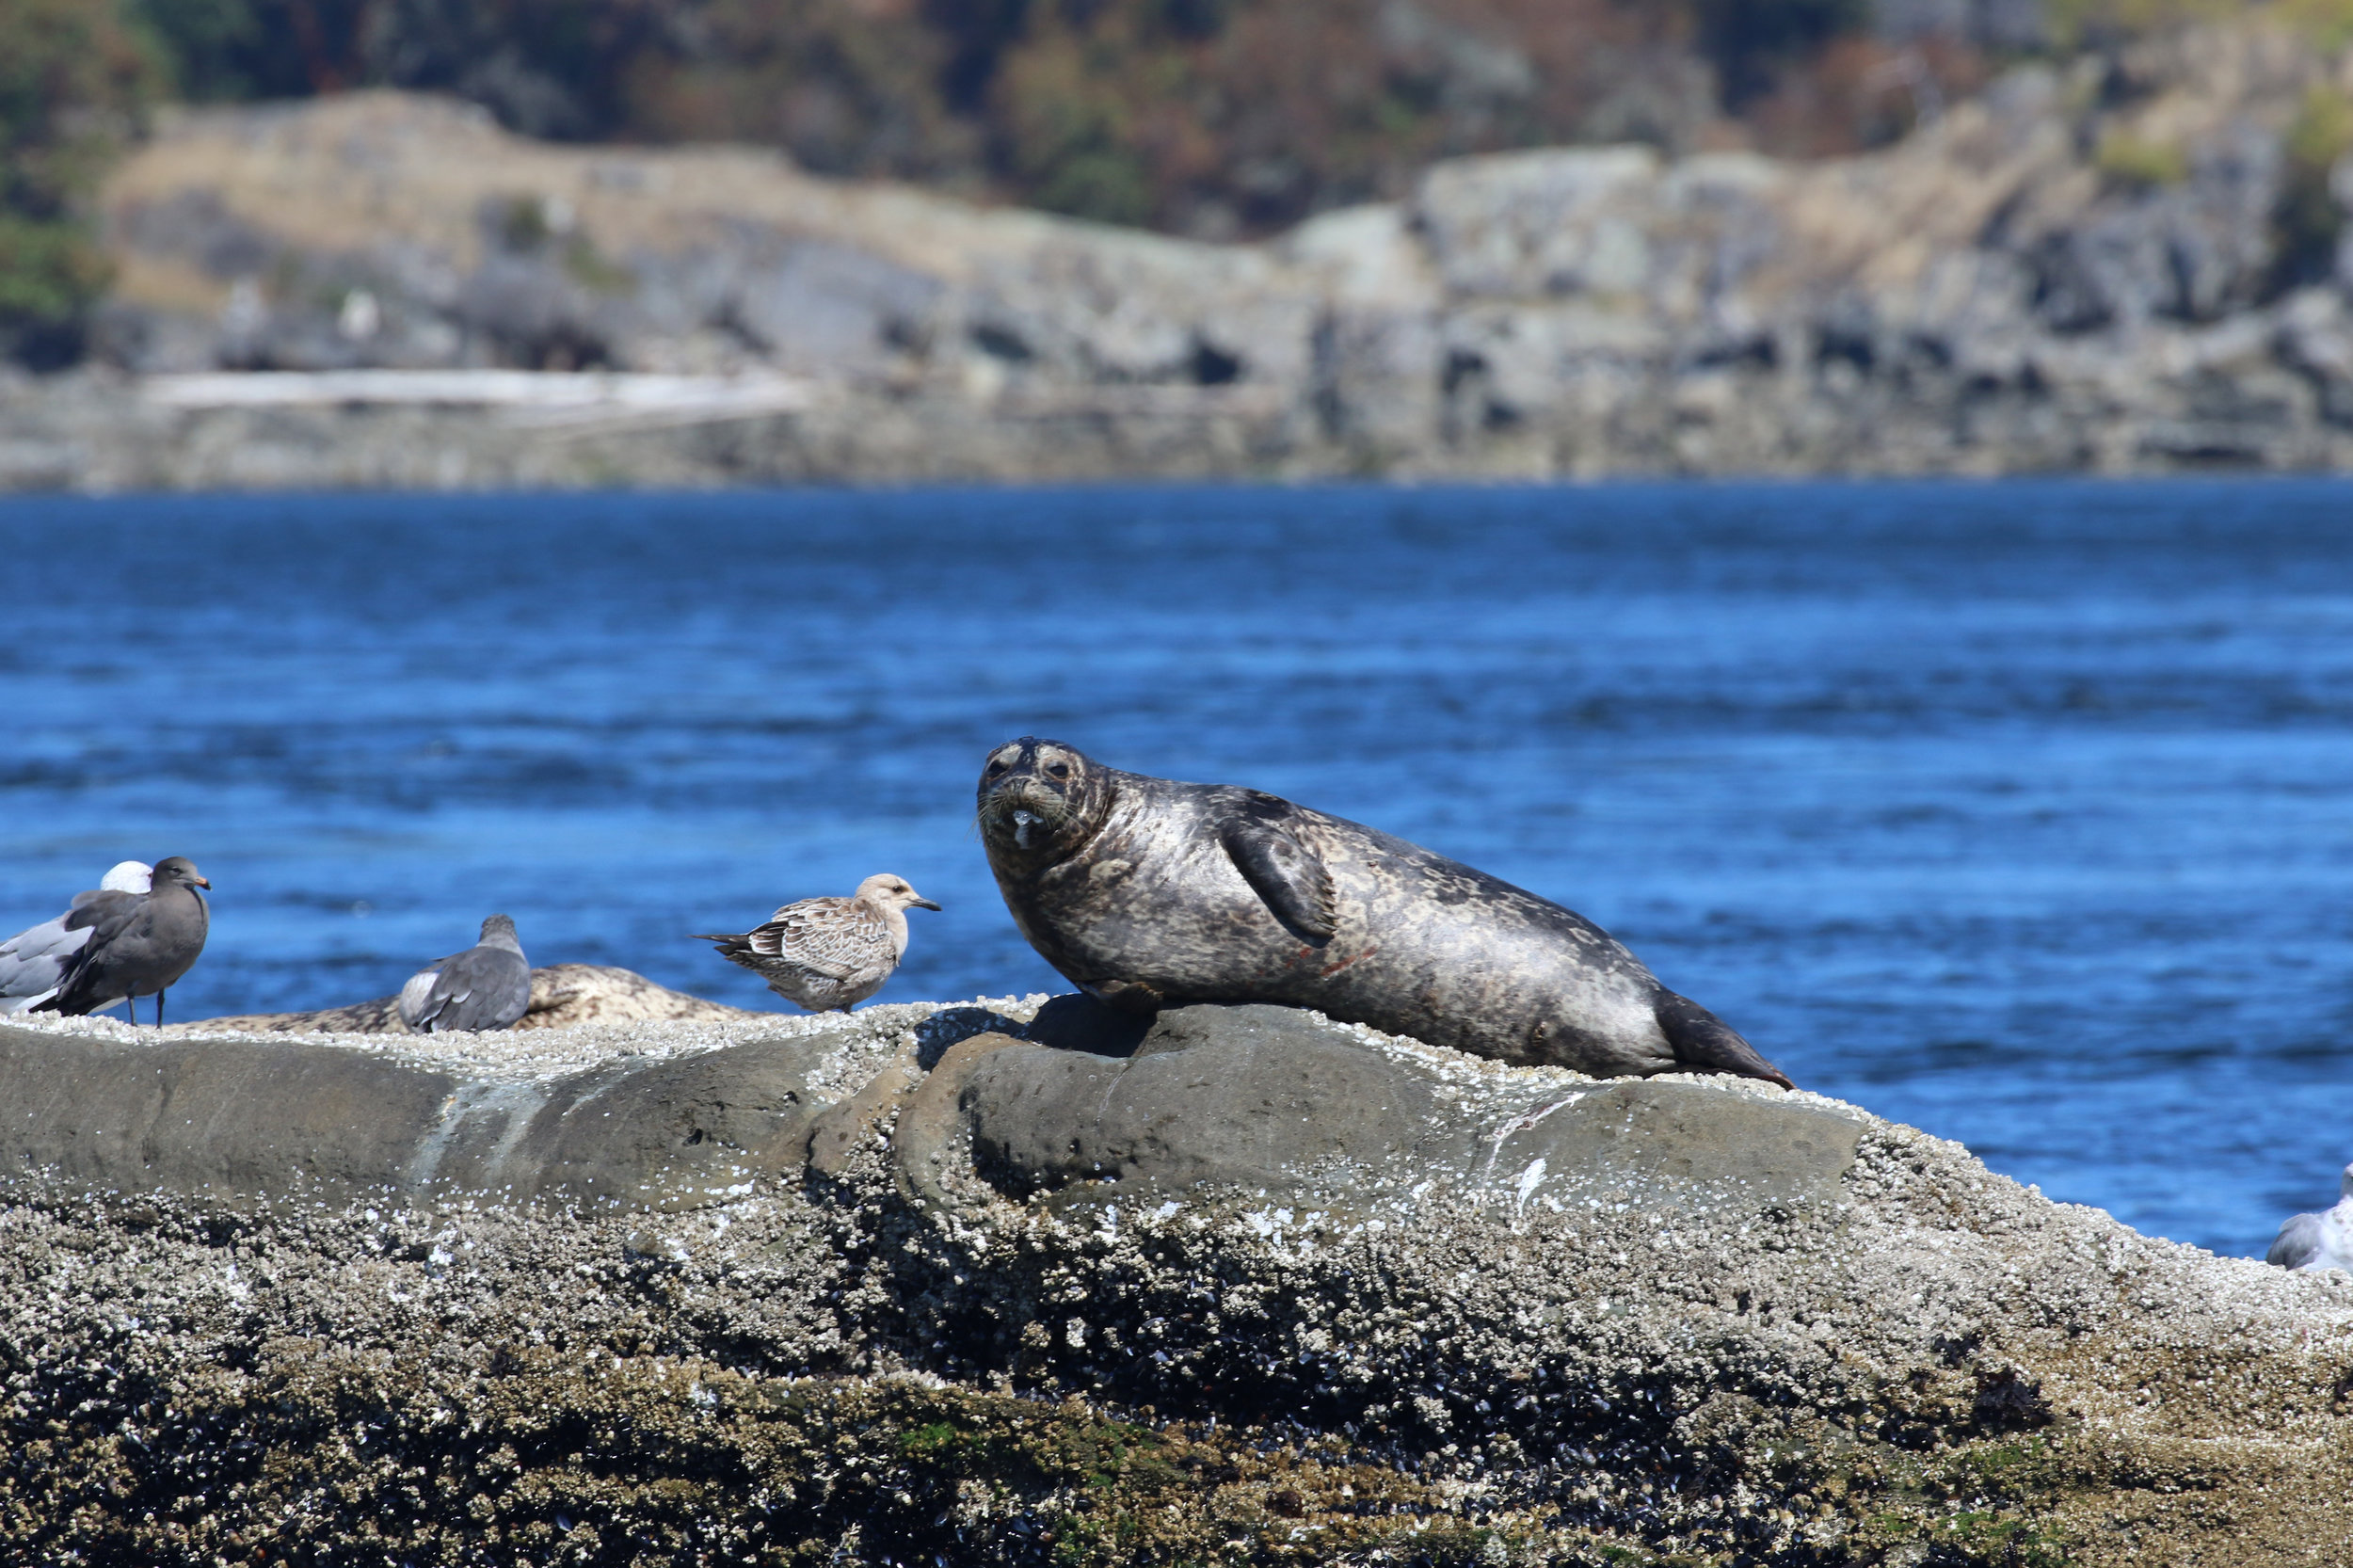 We stopped at a seal haulout on the way home! Photo by Rebeka Pirker